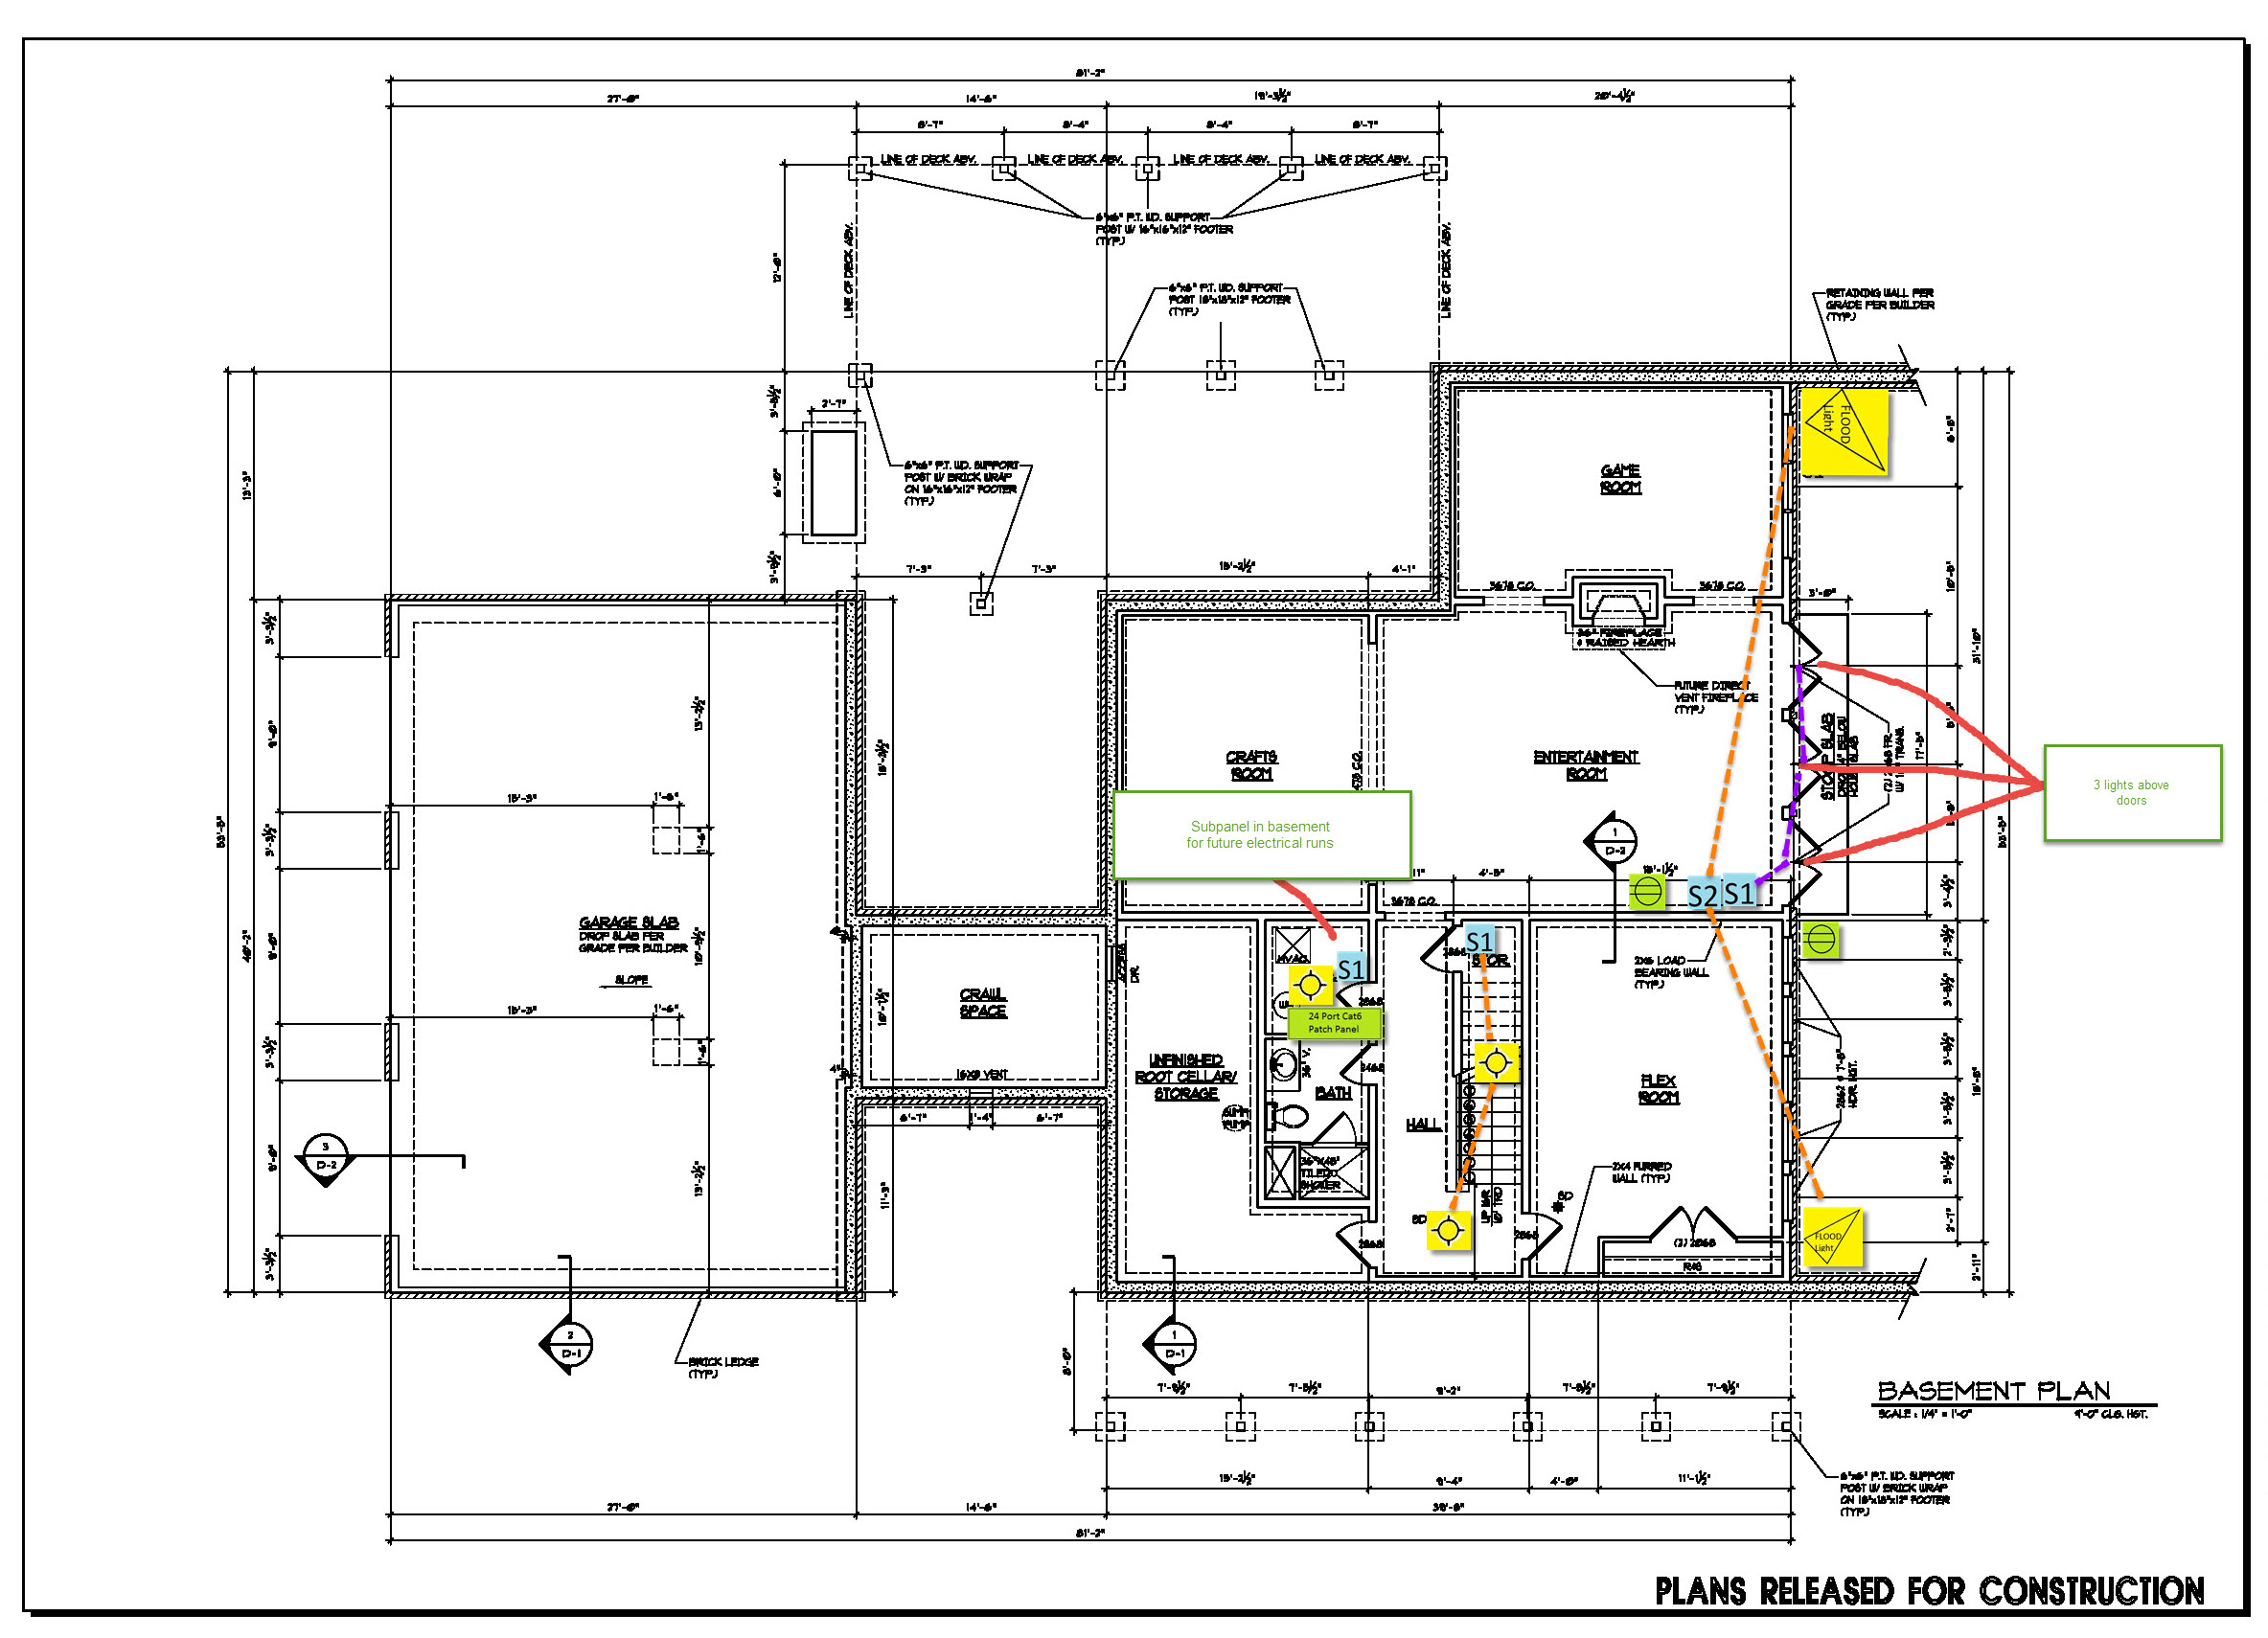 electrical plan basement wiring librarybasement floor electrical plan